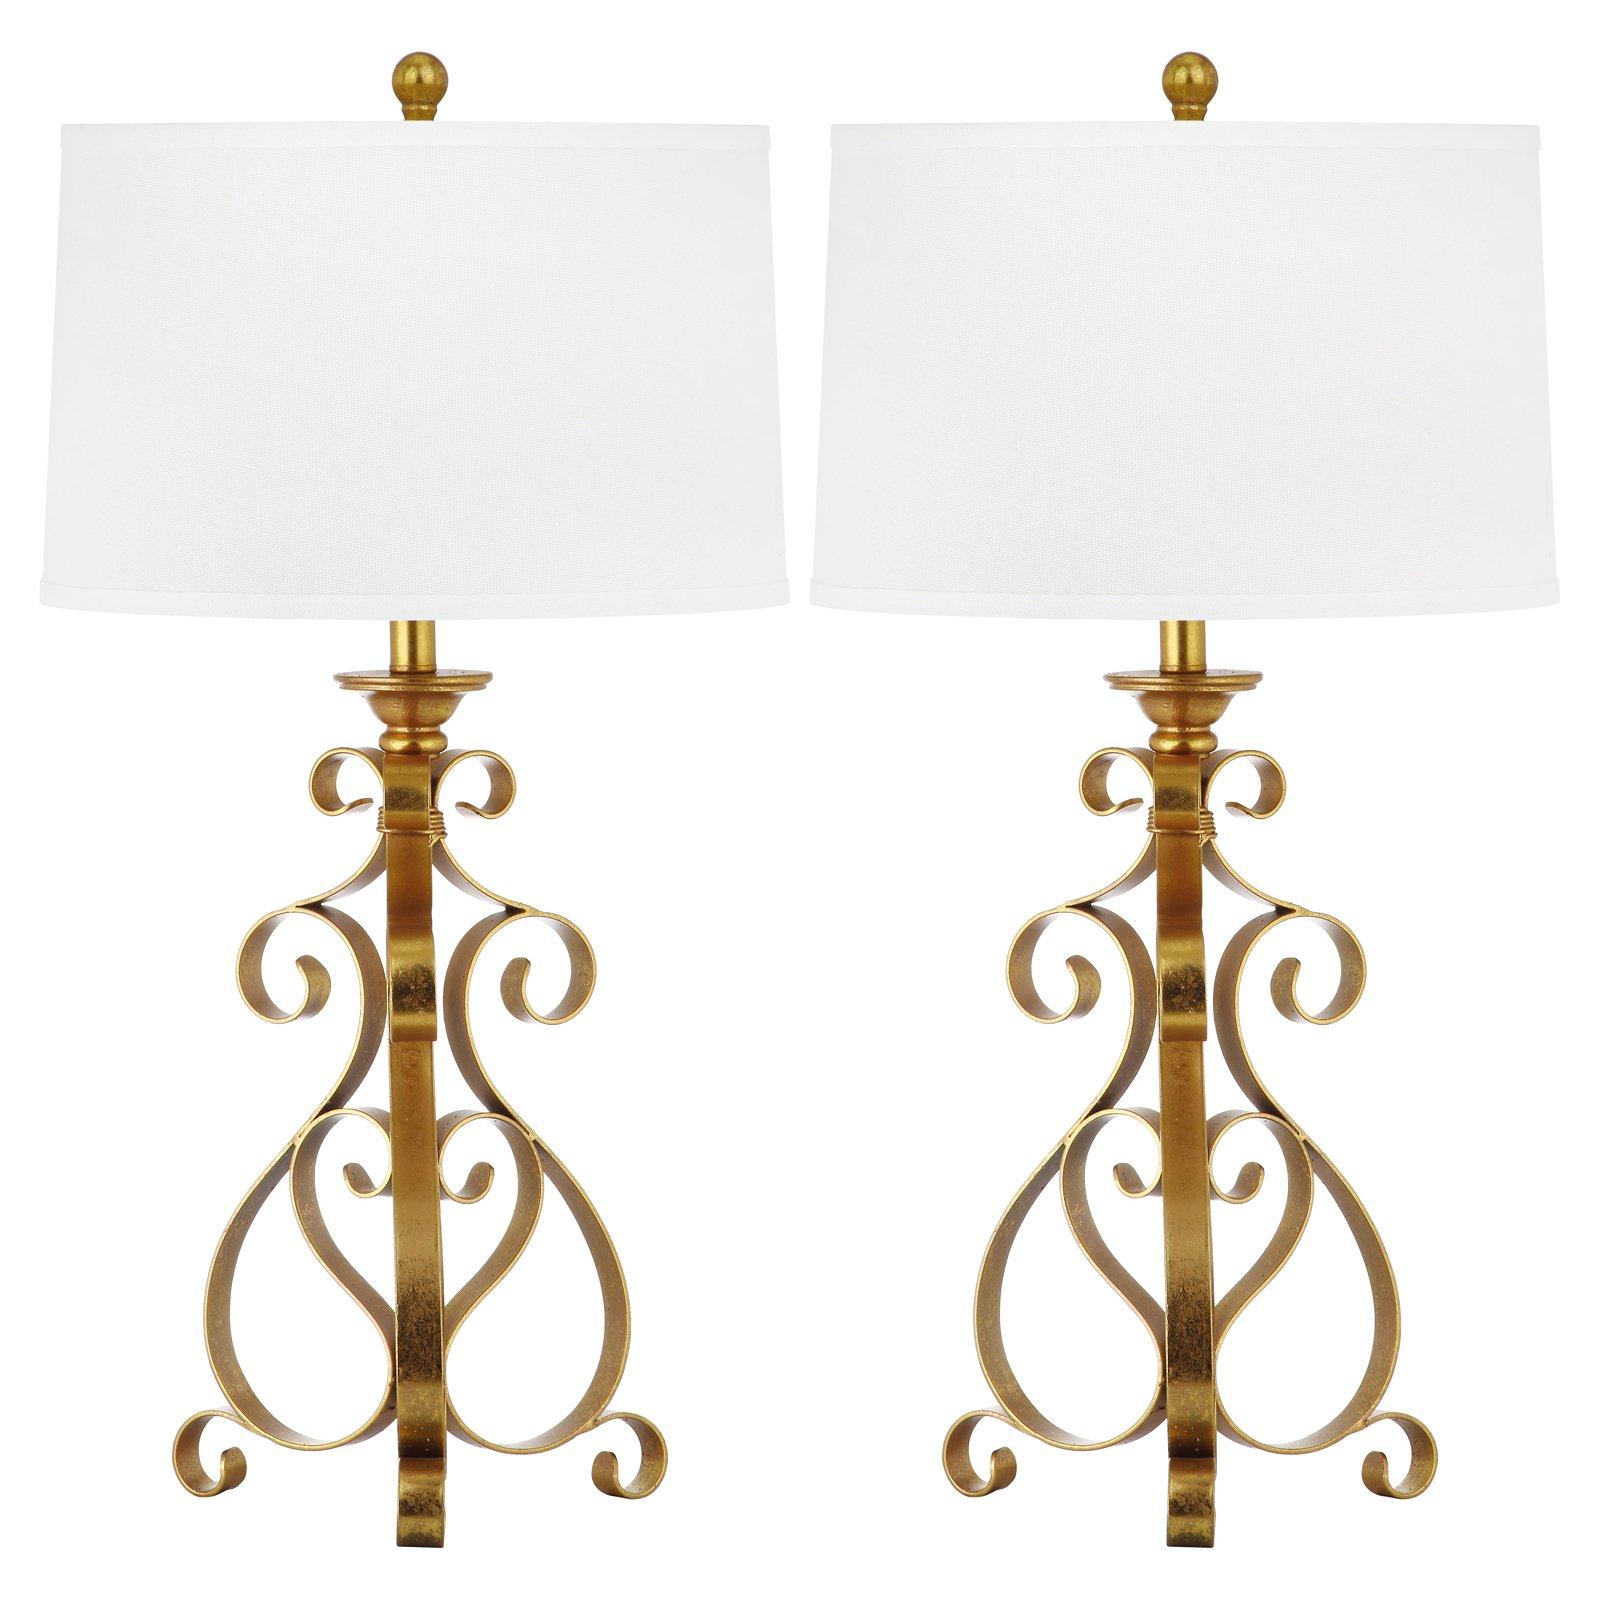 Safavieh Scroll Sculpture Table Lamp with CFL Bulb, Antique Gold with Off-White Shade, Set of 2